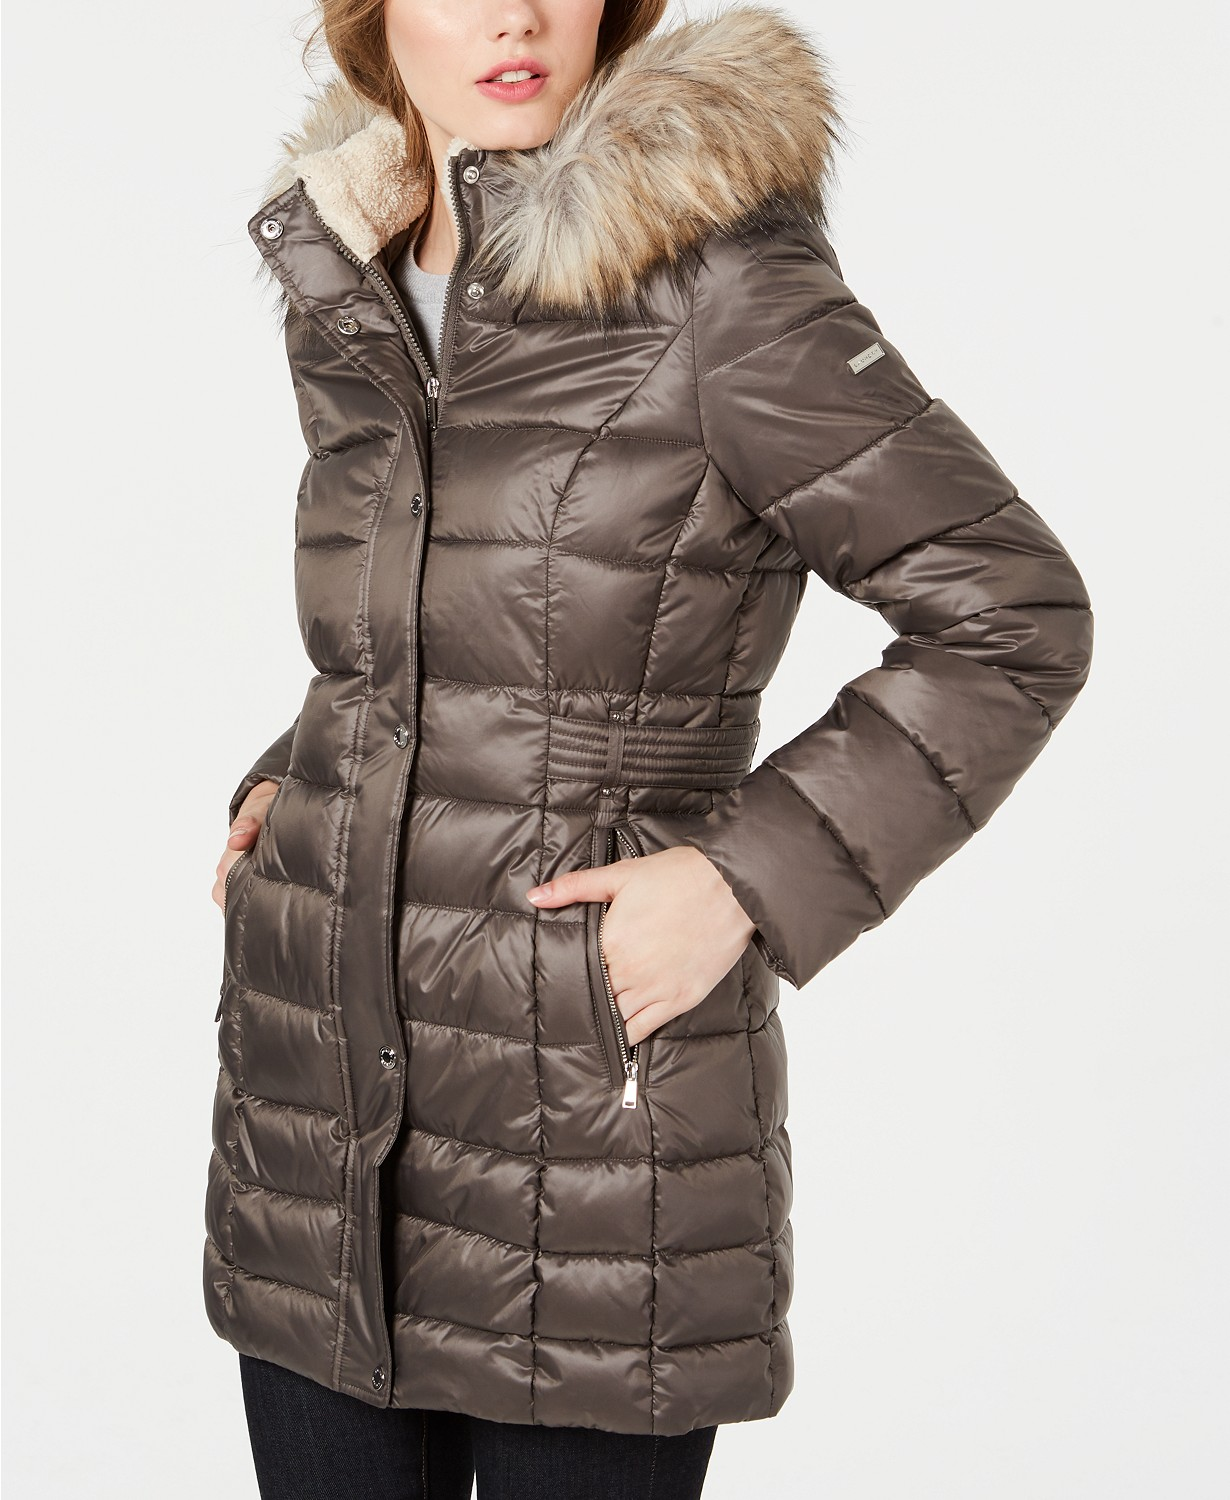 Coats Offer code YAY All Women's Clothing